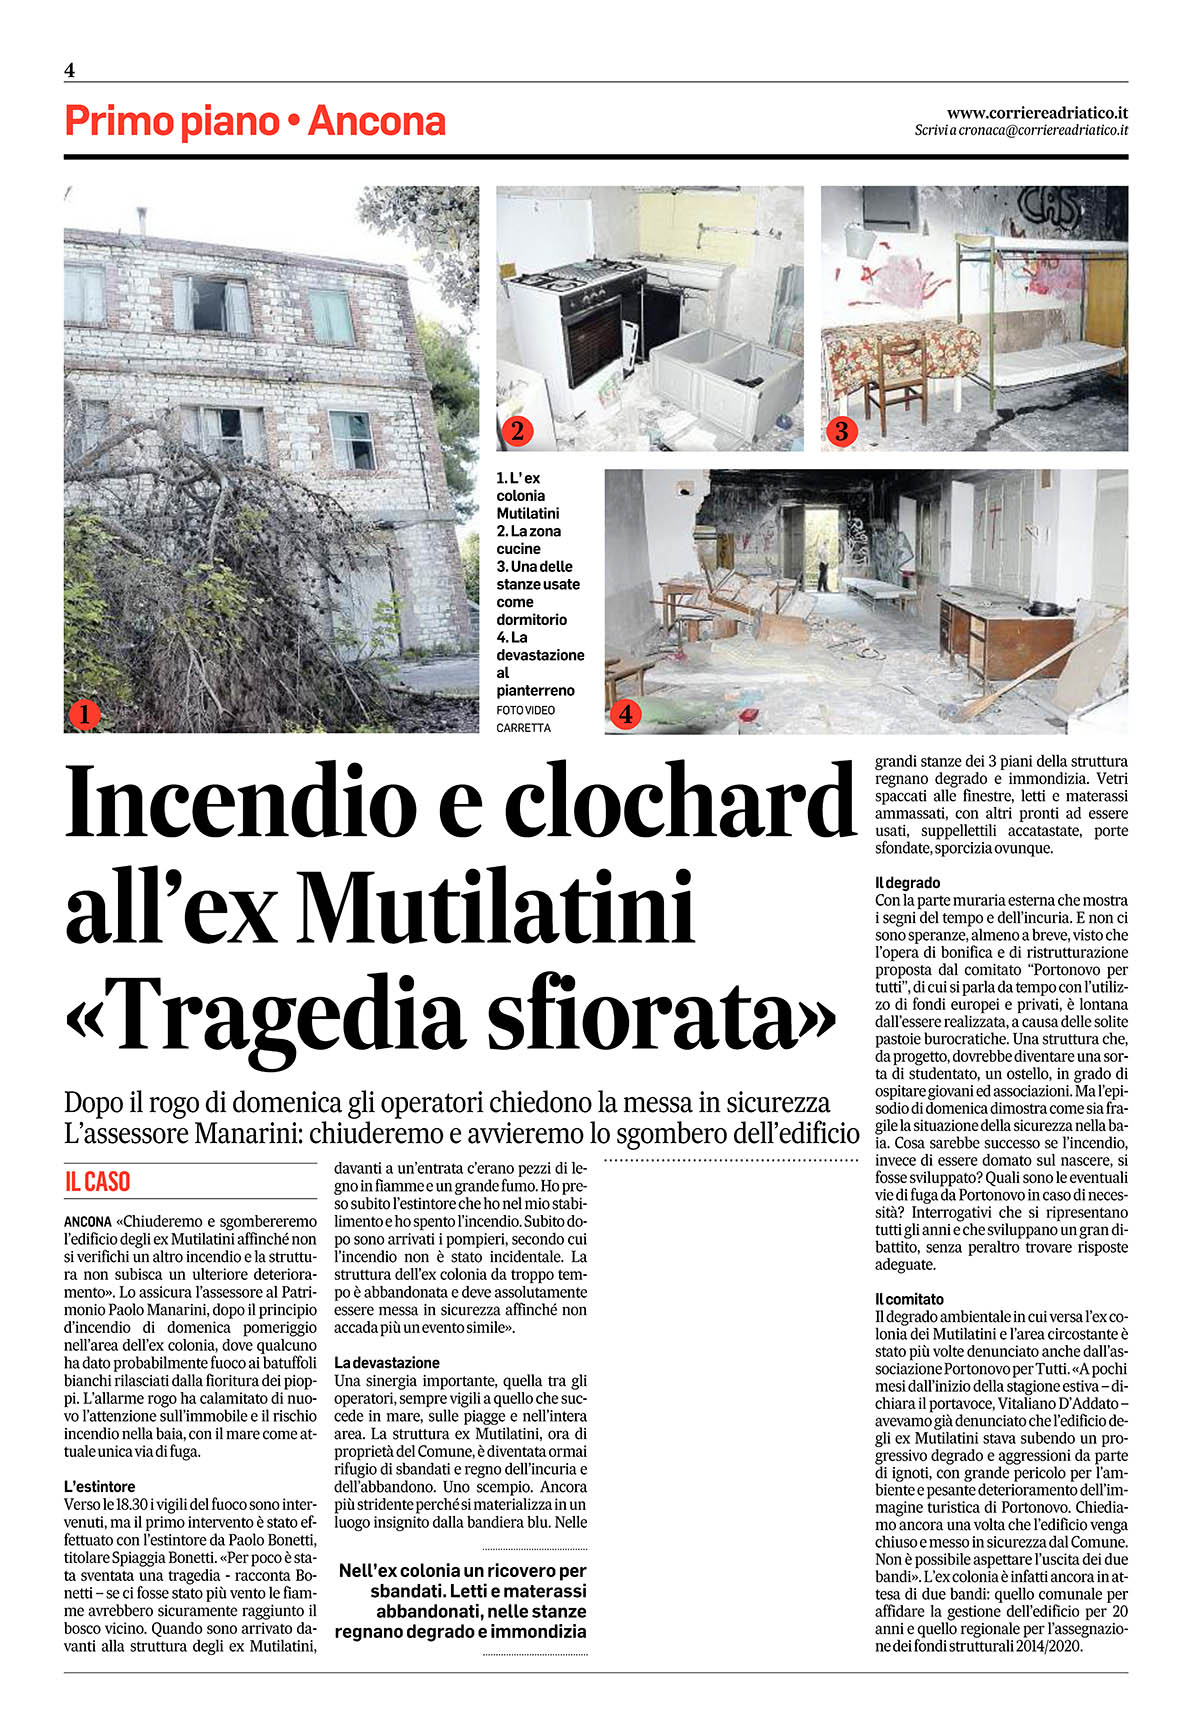 2017 05 16 c.a. incendio e clochard